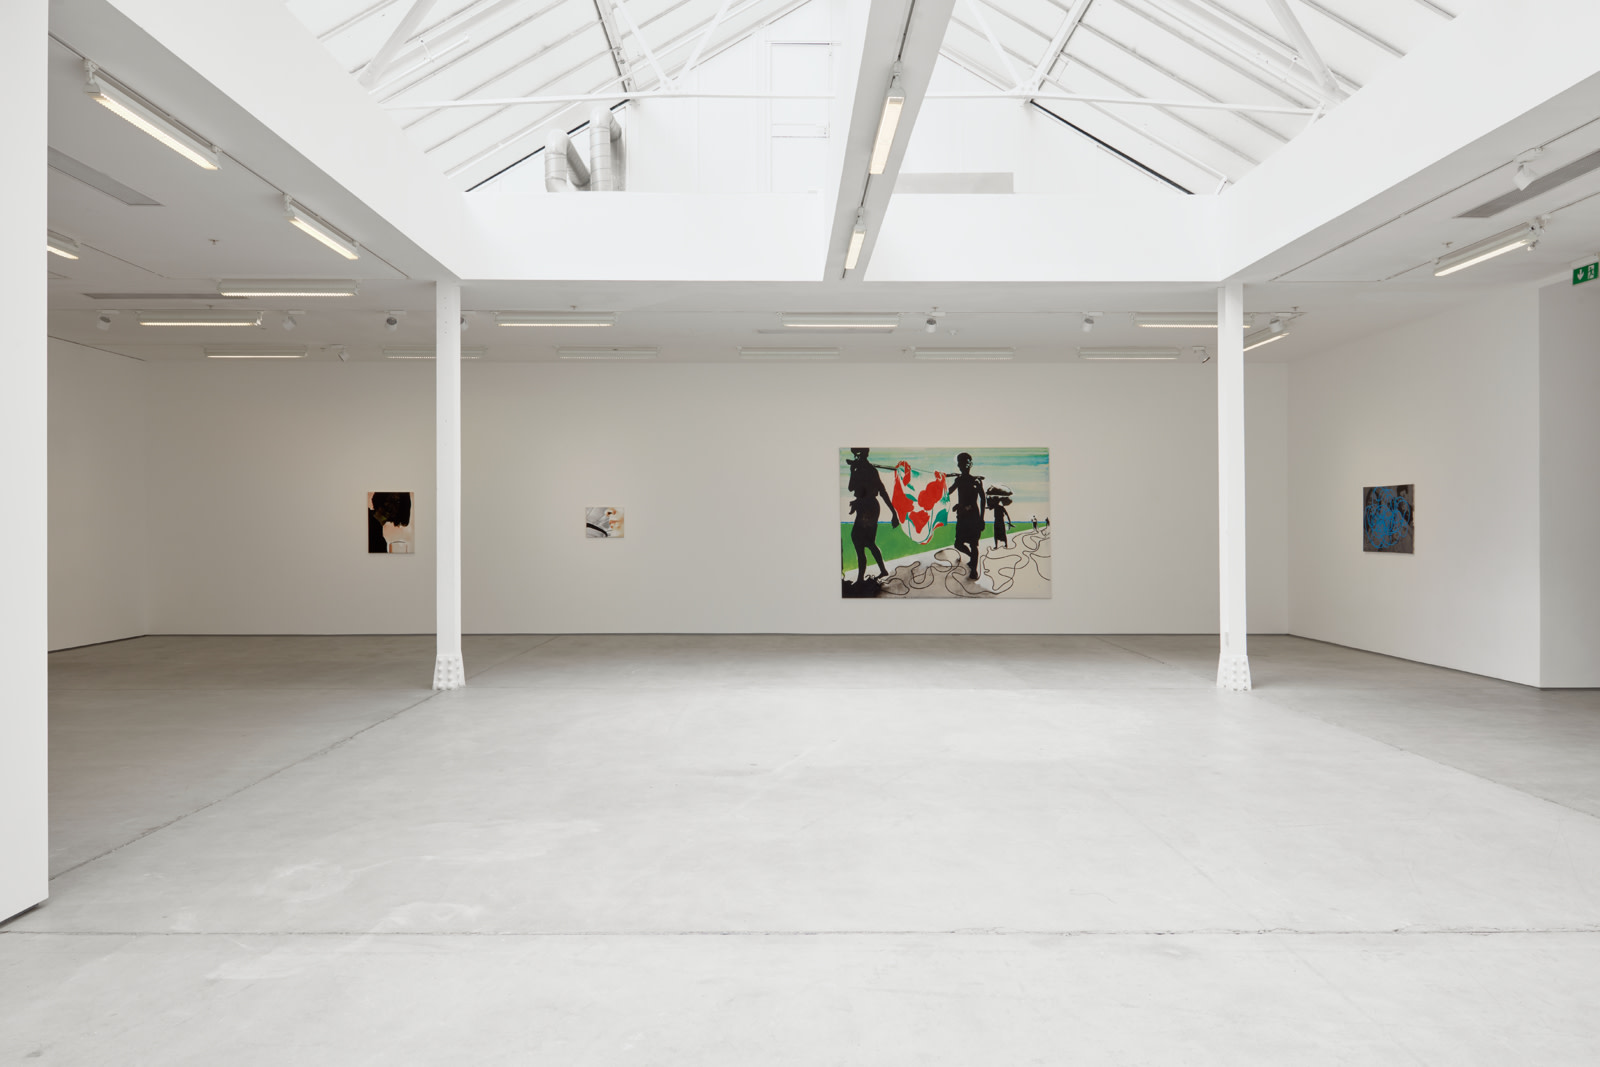 "<div class=""artwork_caption""><p>Installation view, 2018</p></div>"